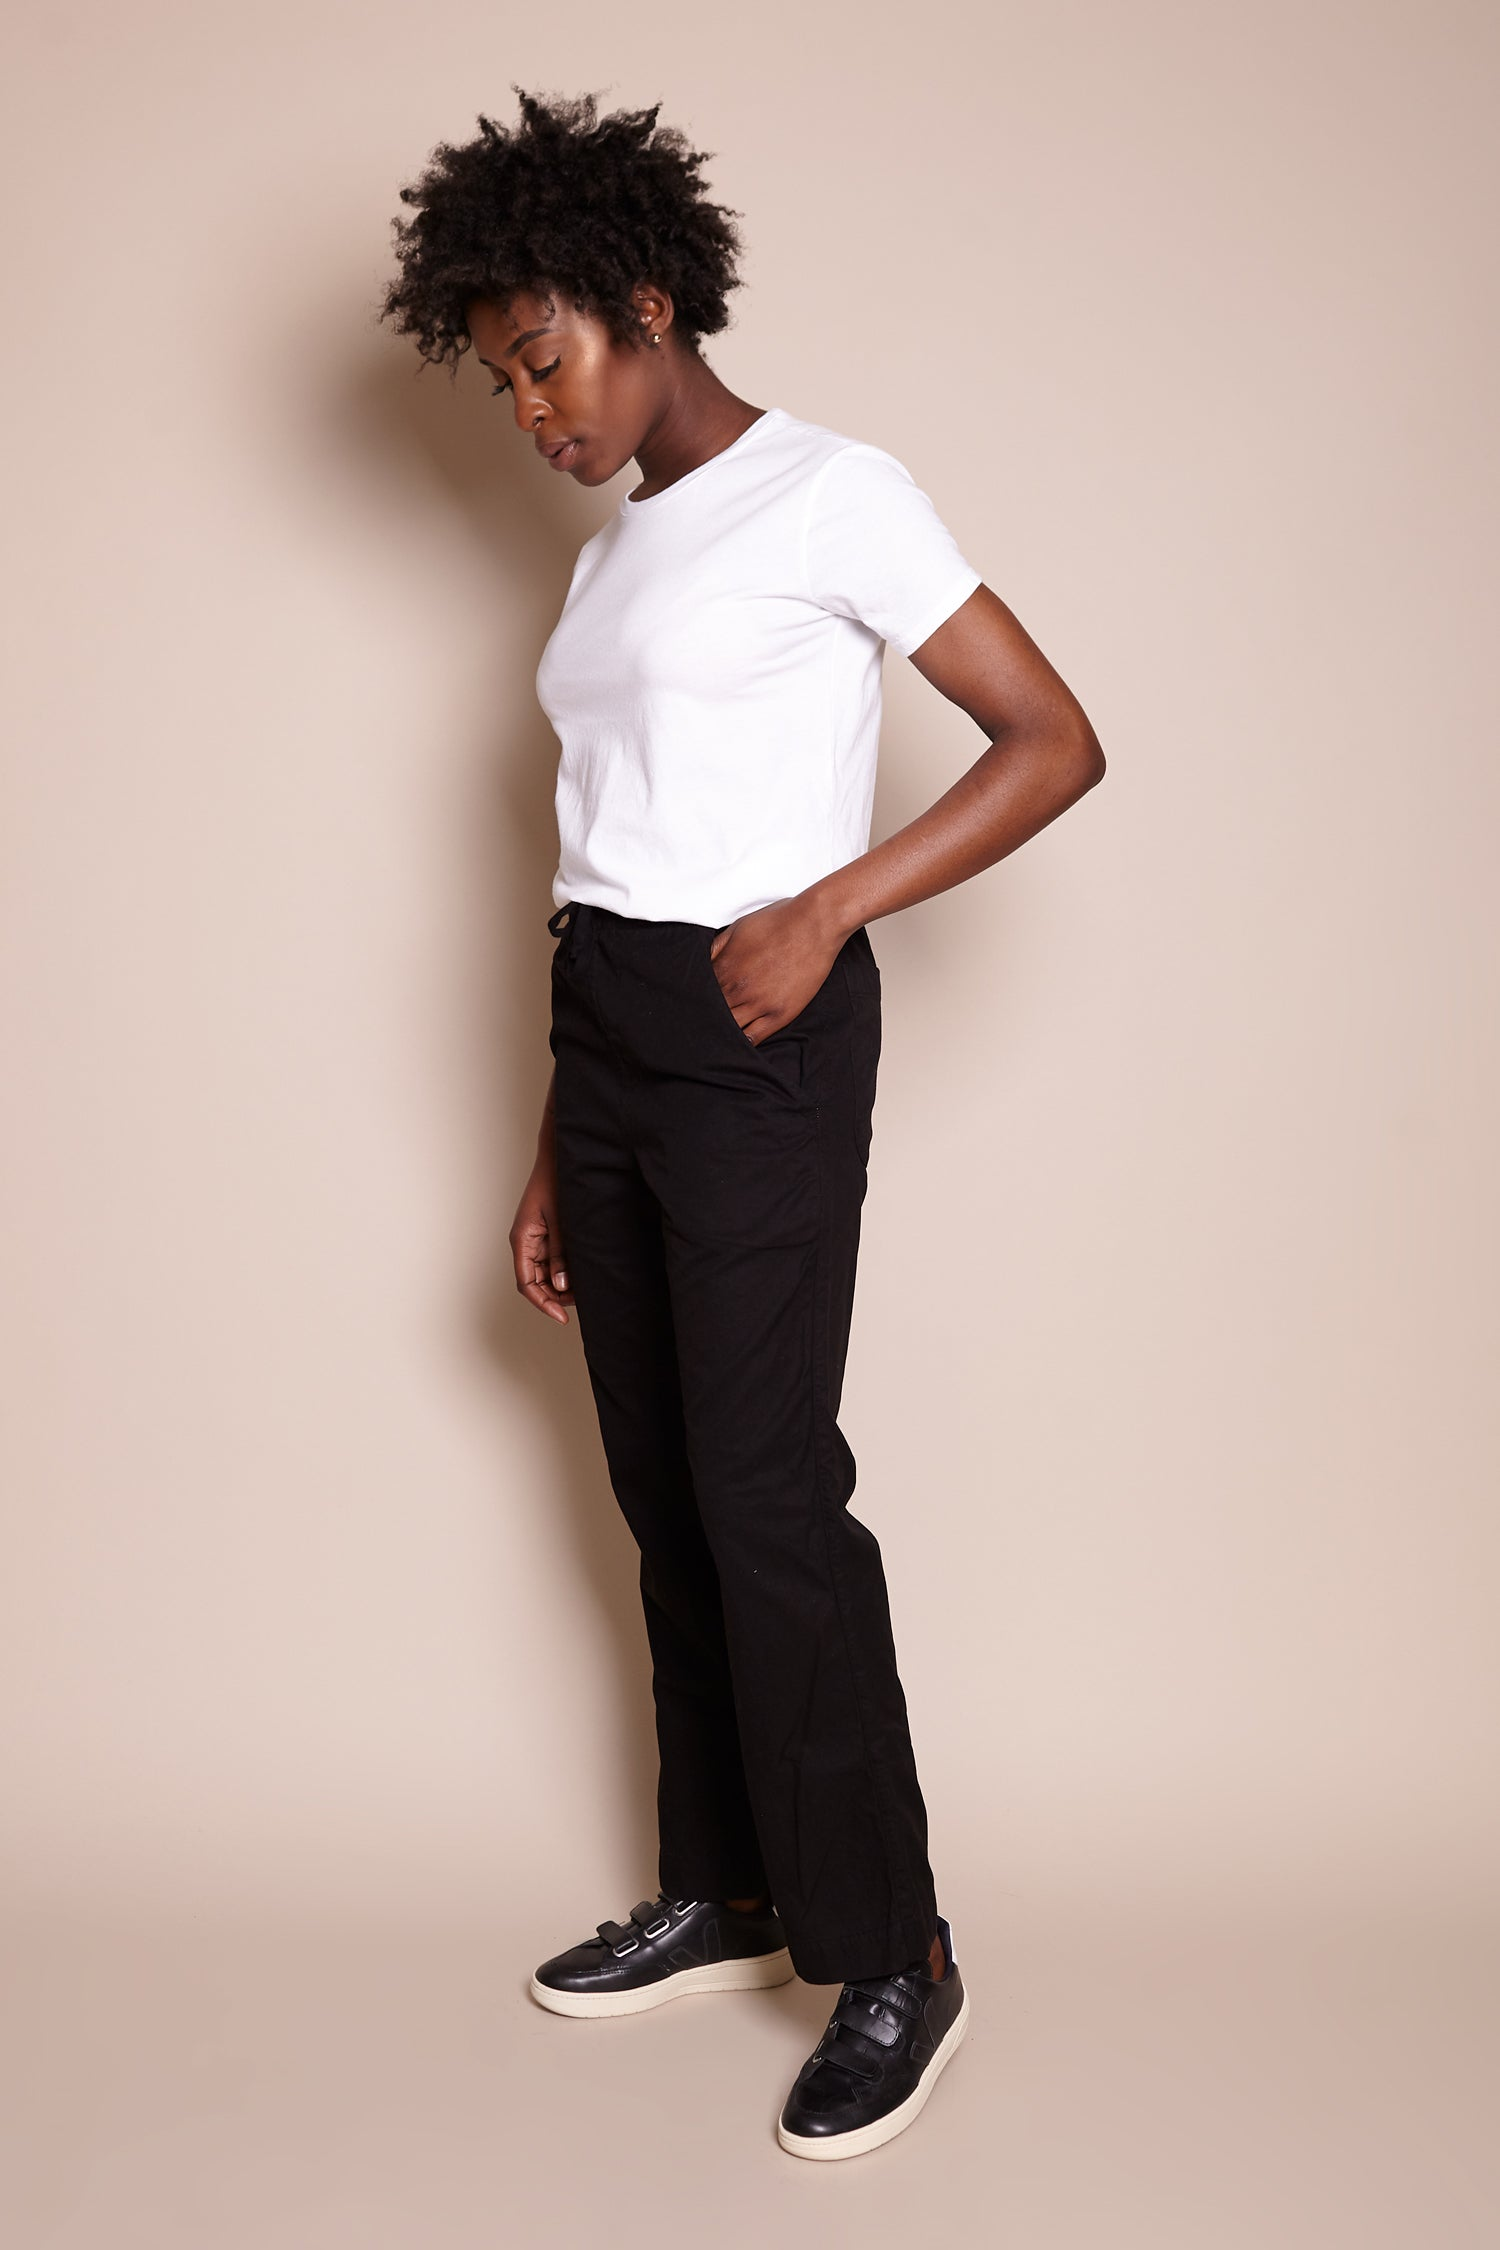 Save Khaki United Comfort Chino in Black - Vert & Vogue